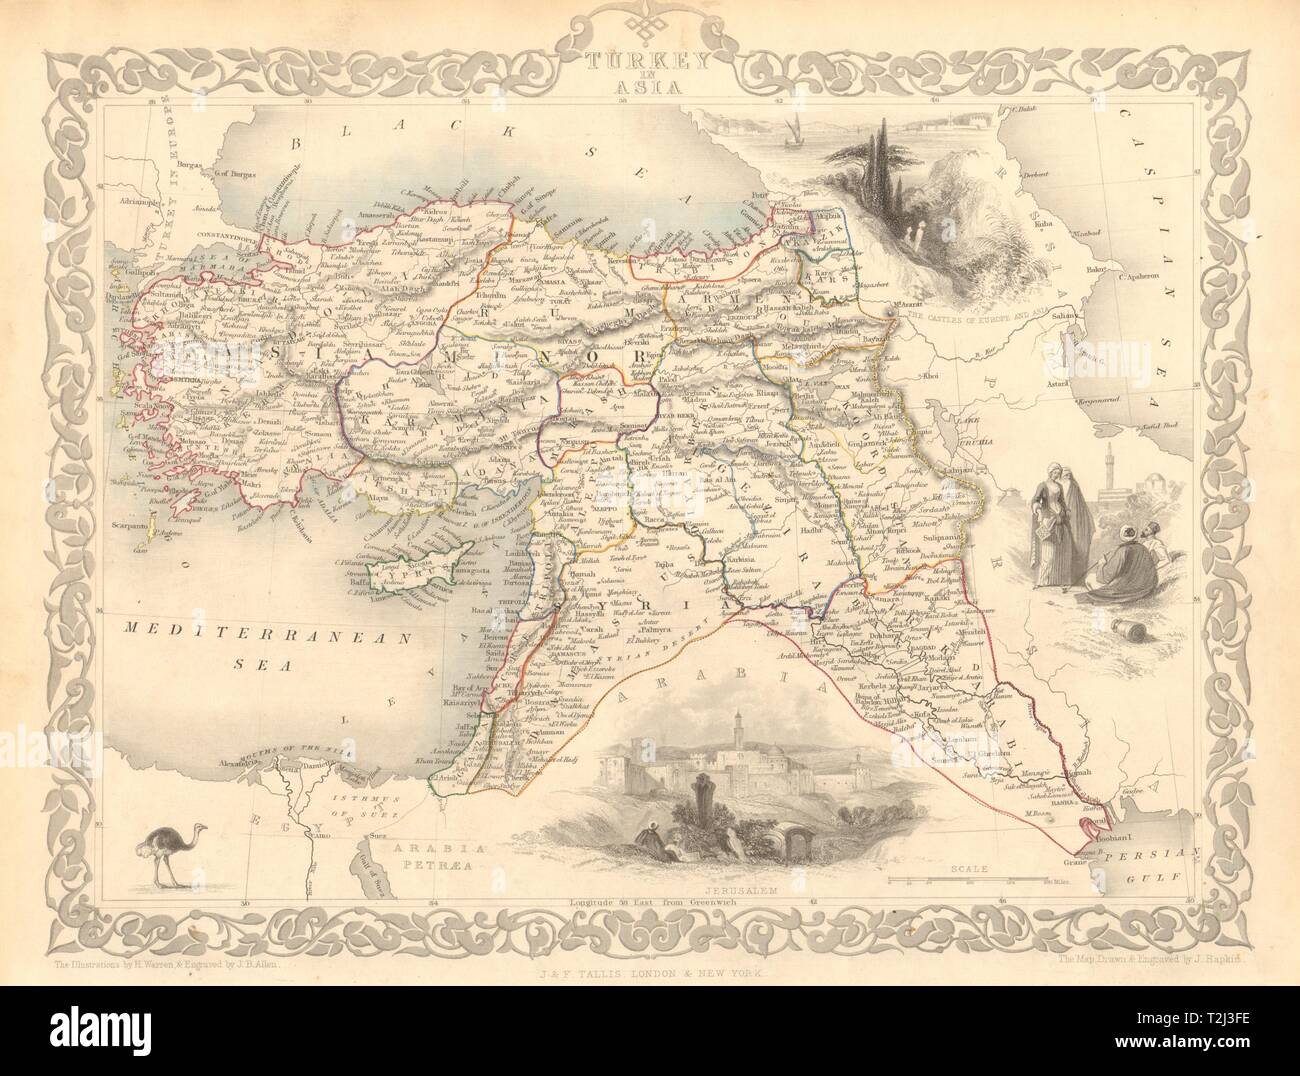 Maps, Atlases & Globes Weller 1862 Map Various Styles Turkey In Asia East Armenia Kurdistan Assyria Mesopotamia Iraq